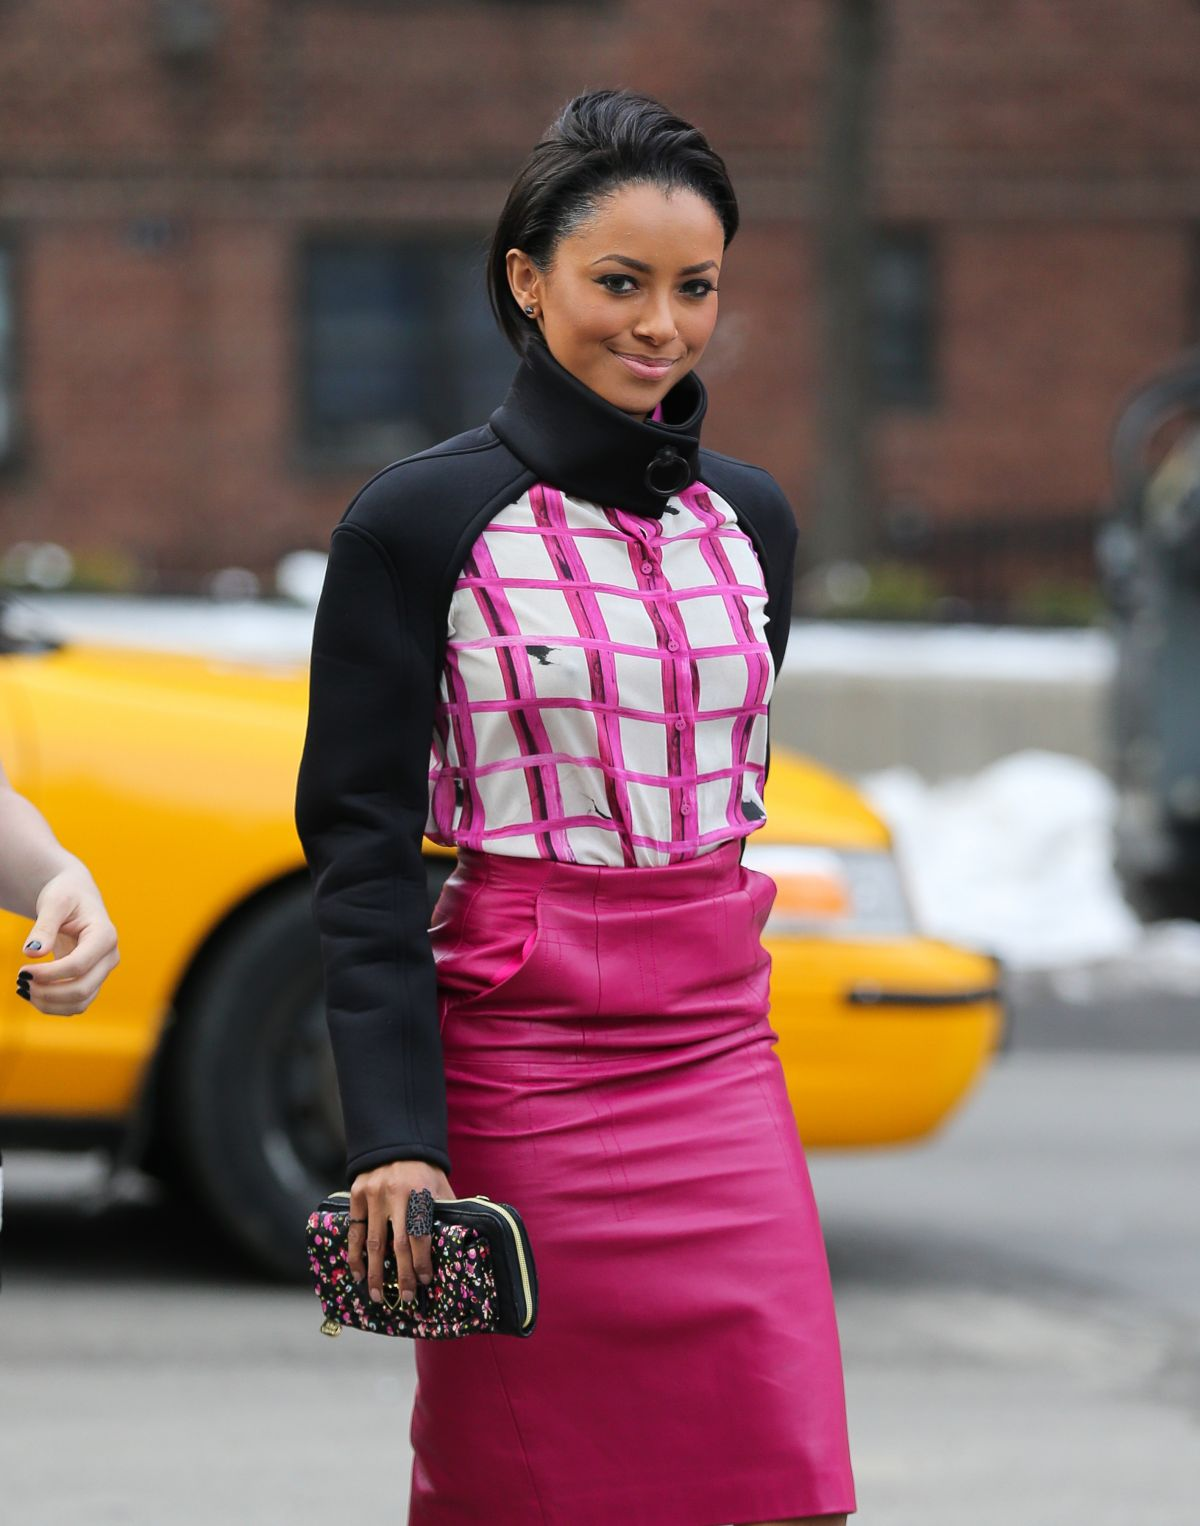 Kat Graham At The Lincoln Center During NYFW In NYC